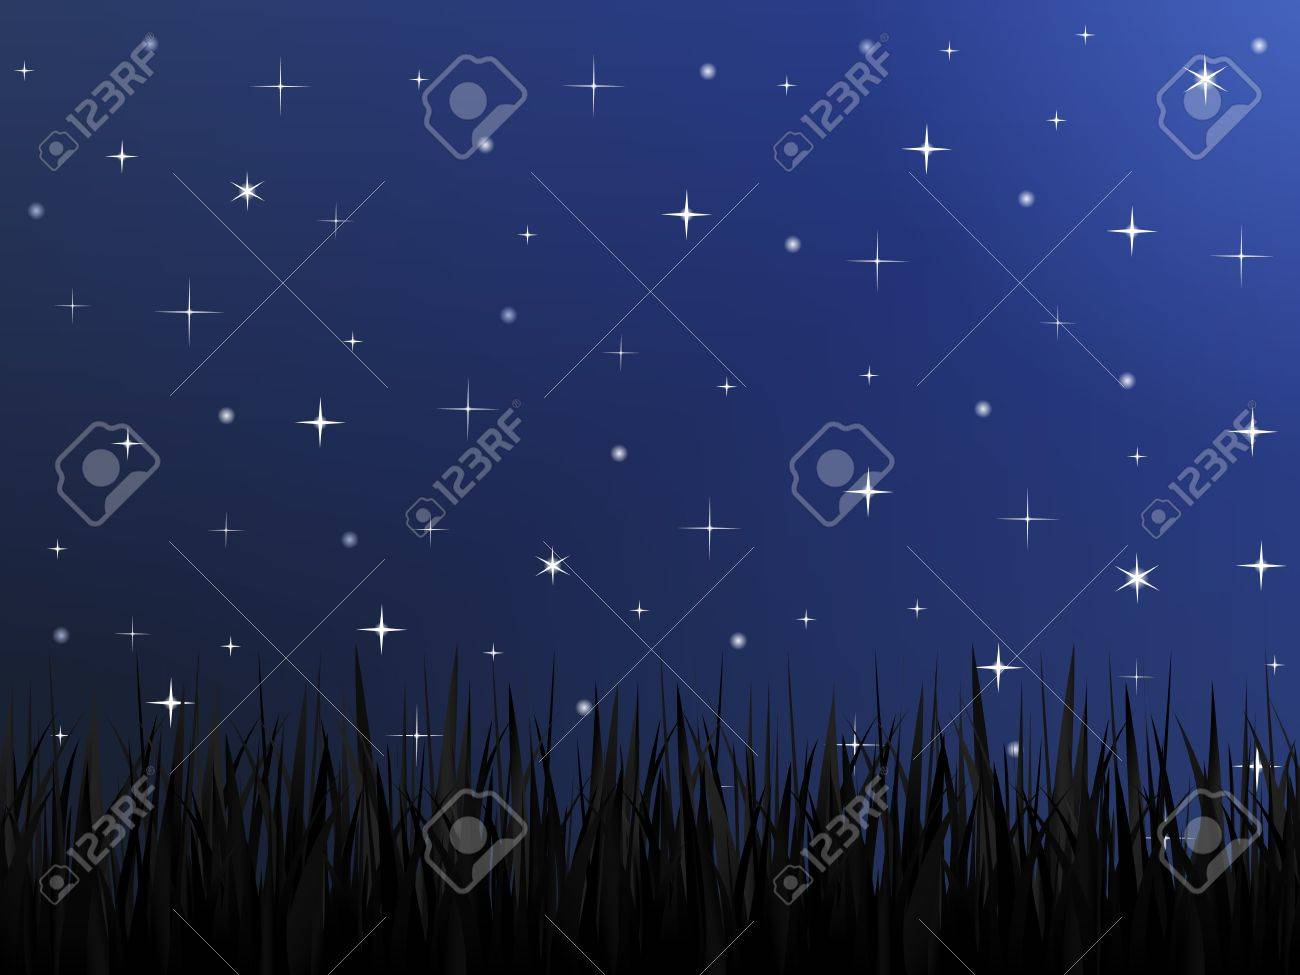 Silhouette of grass and night sky with stars Stock Vector - 14897715